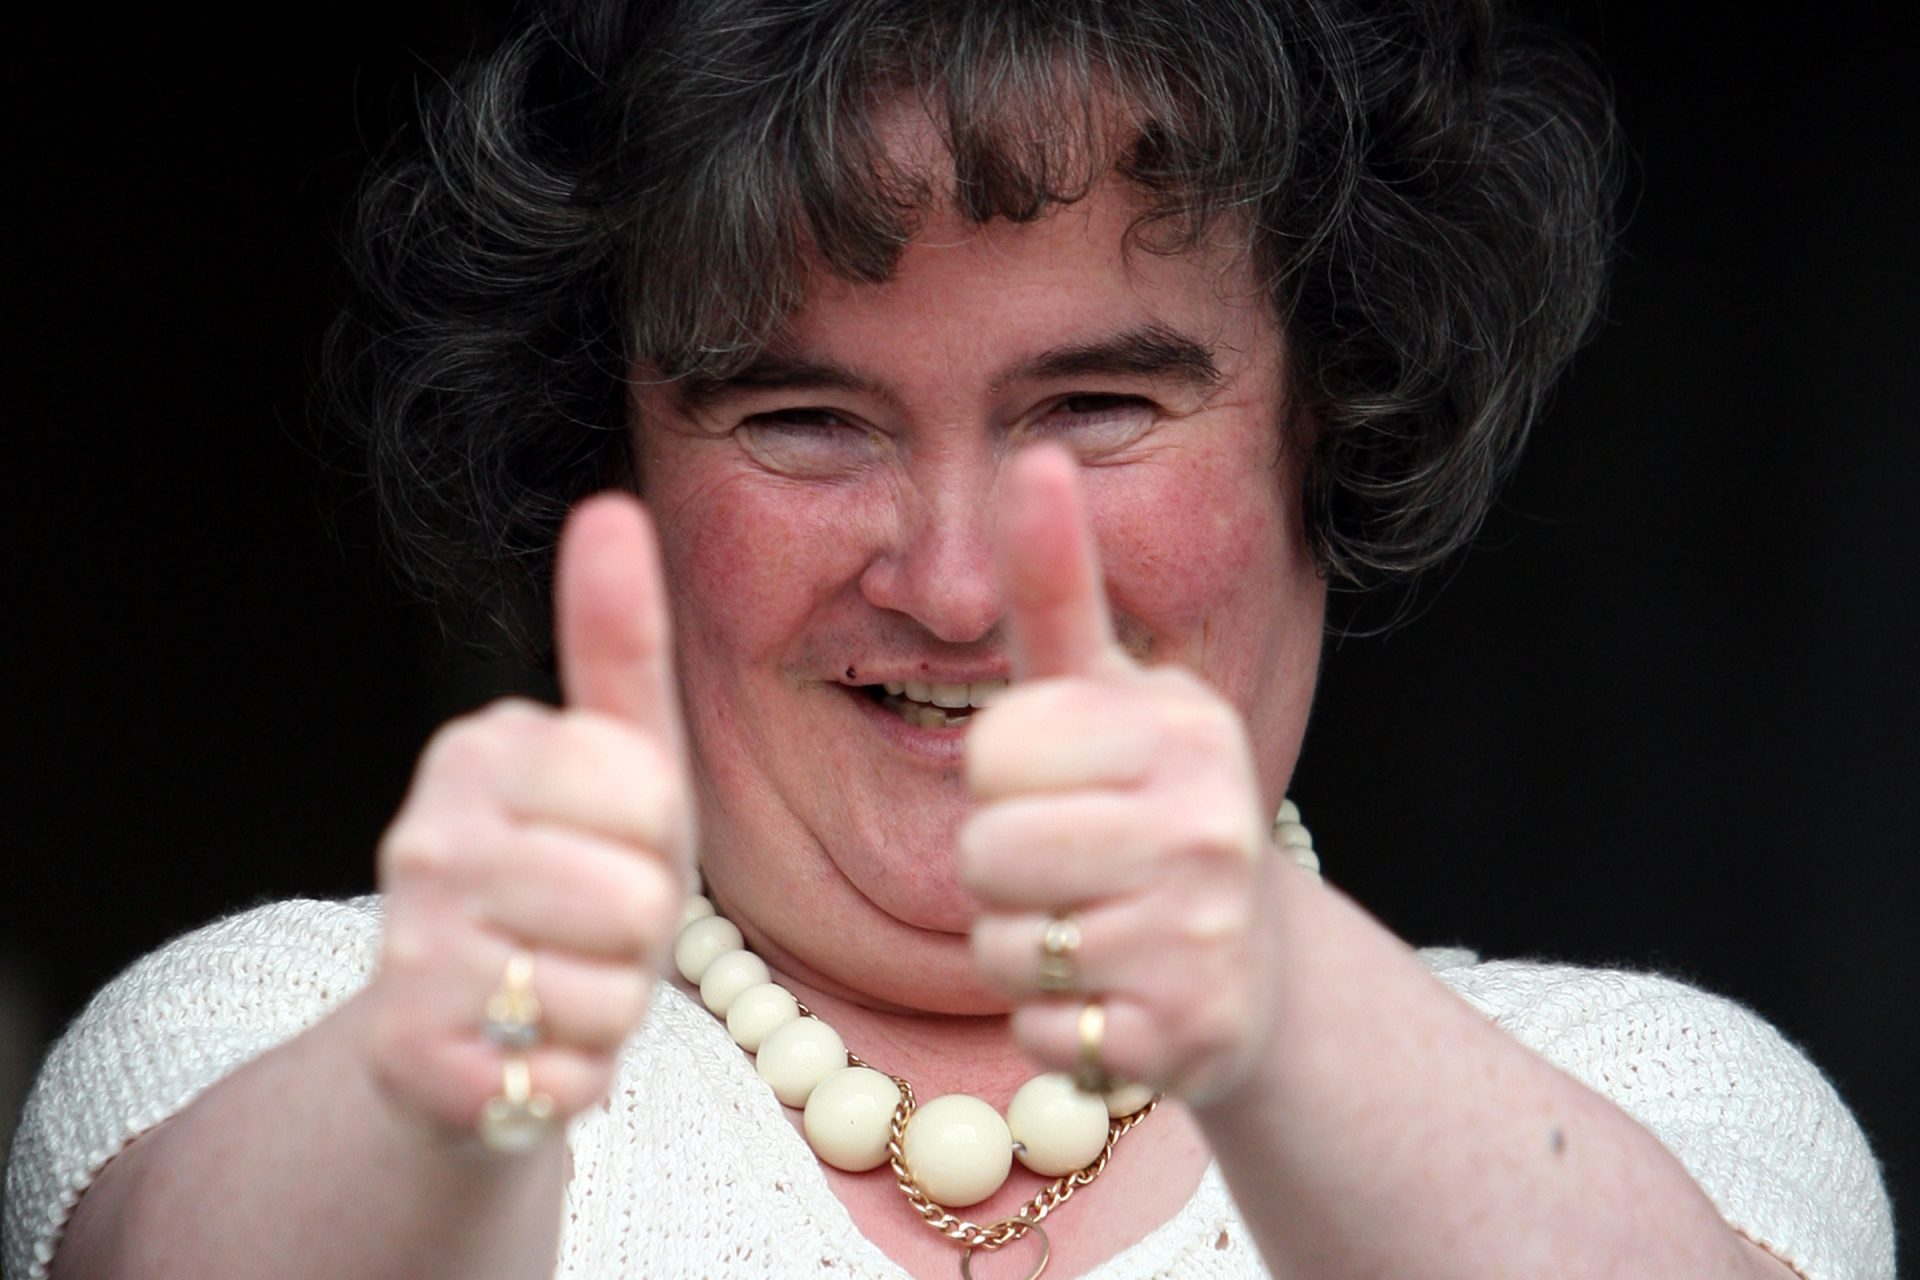 Whatever happened to Susan Boyle?